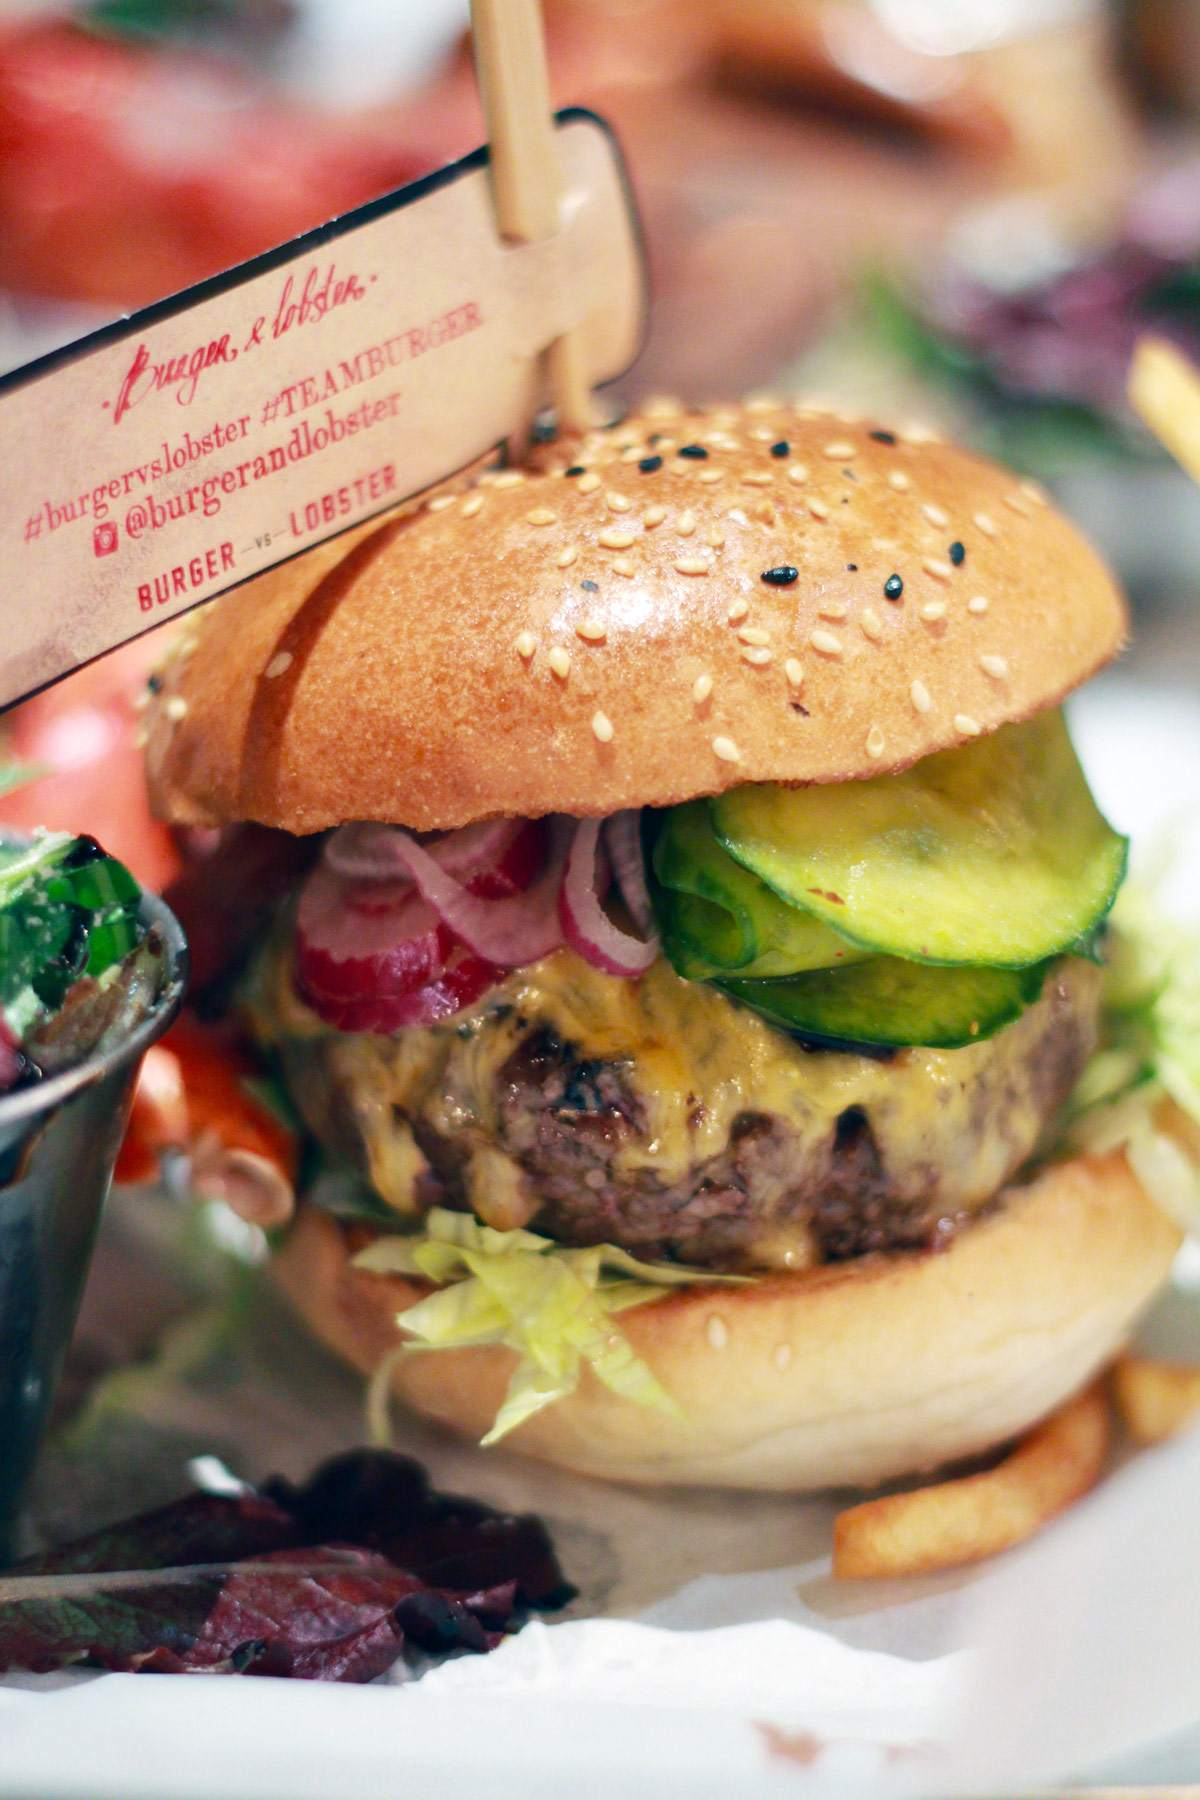 burger-and-lobster-london-oxford-street-review-travel-lifestyle-blogger